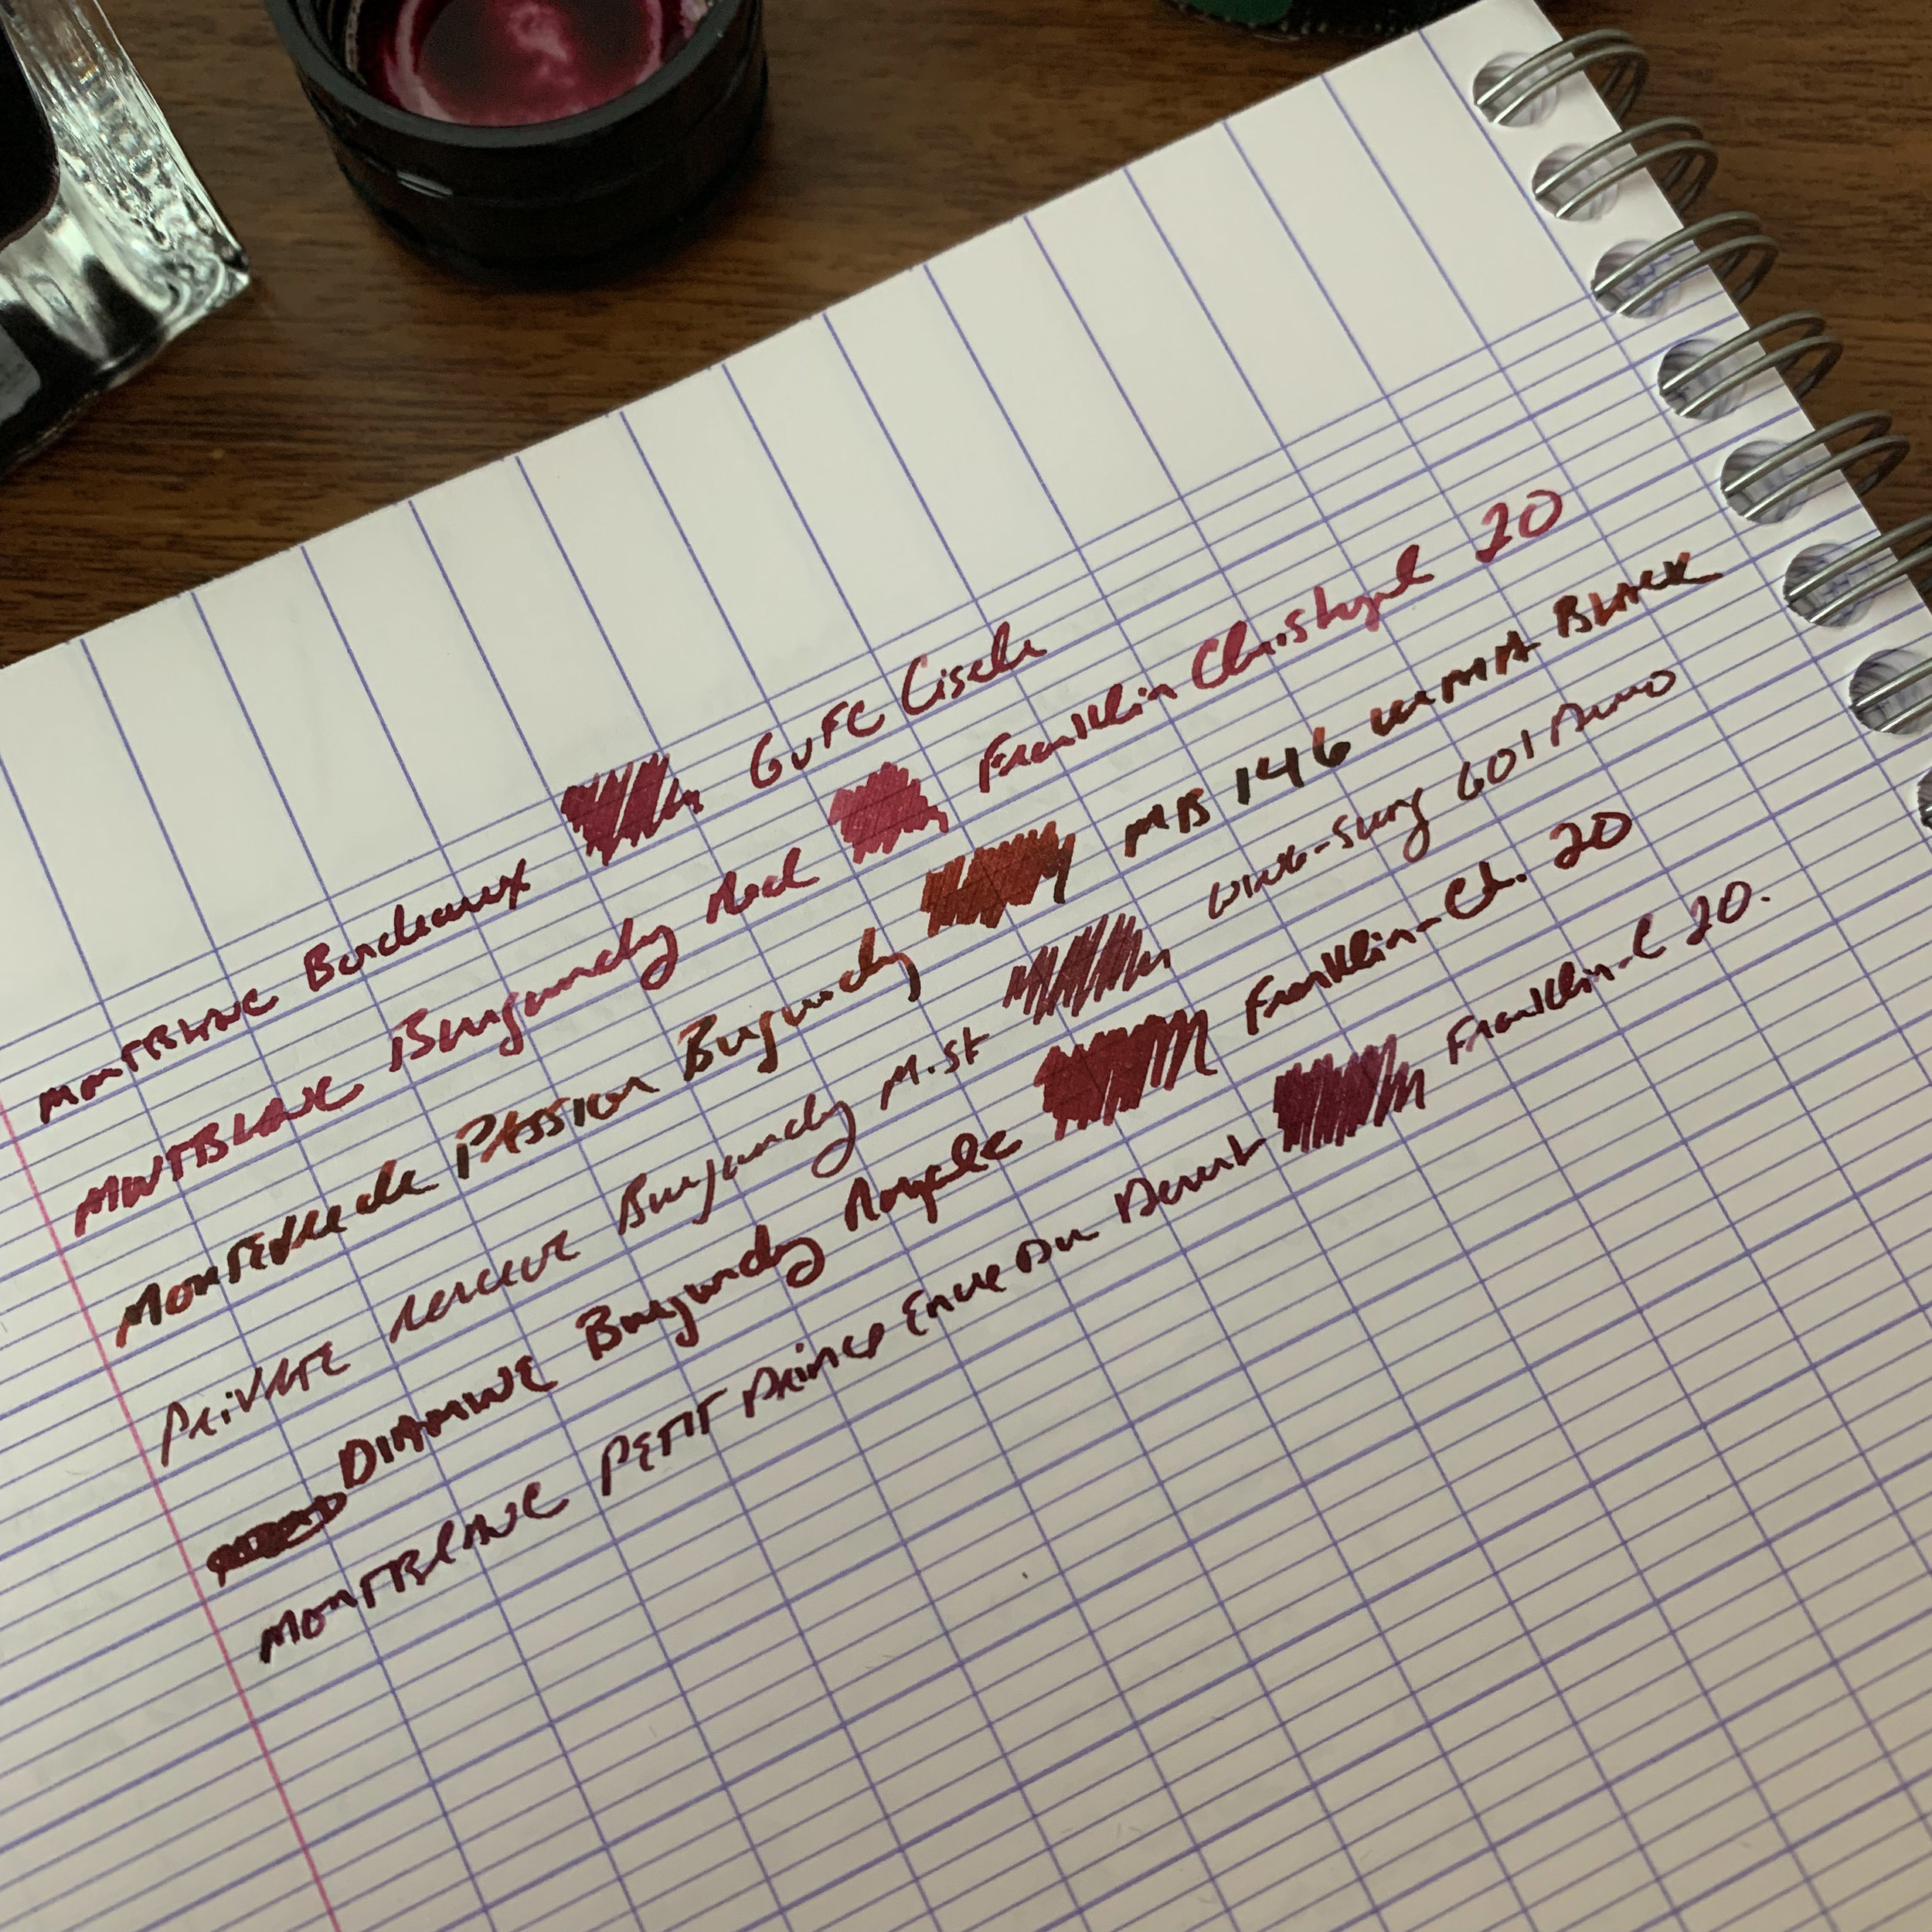 Out of these inks, I would rank my favorites as follows: (1) Montblanc Bordeaux; (2) Monteverde Passion Burgundy; (3) Montblanc Encre du Desert Le Petit Prince (4) Diamine Burgundy Royale; (5) Montblanc Burgundy Red; and (6) Private Reserve Burgundy Mist. All of these inks are excellent, and lean towards the red end of the spectrum rather than